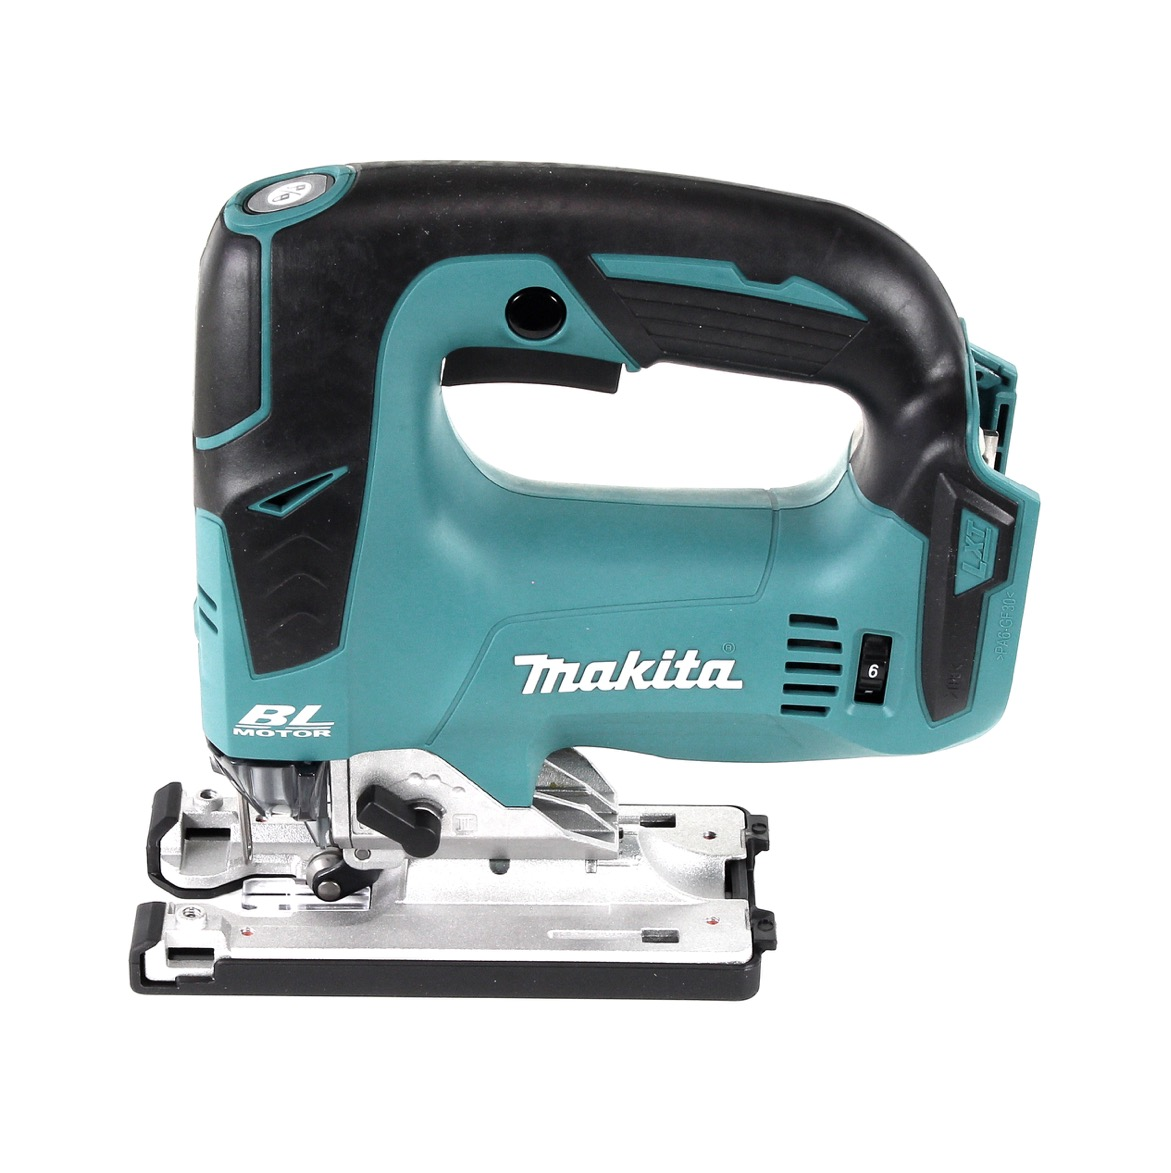 makita djv 182 zj akku stichs ge 18v brushless 26mm solo im makpac ohne akku und ladeger t. Black Bedroom Furniture Sets. Home Design Ideas